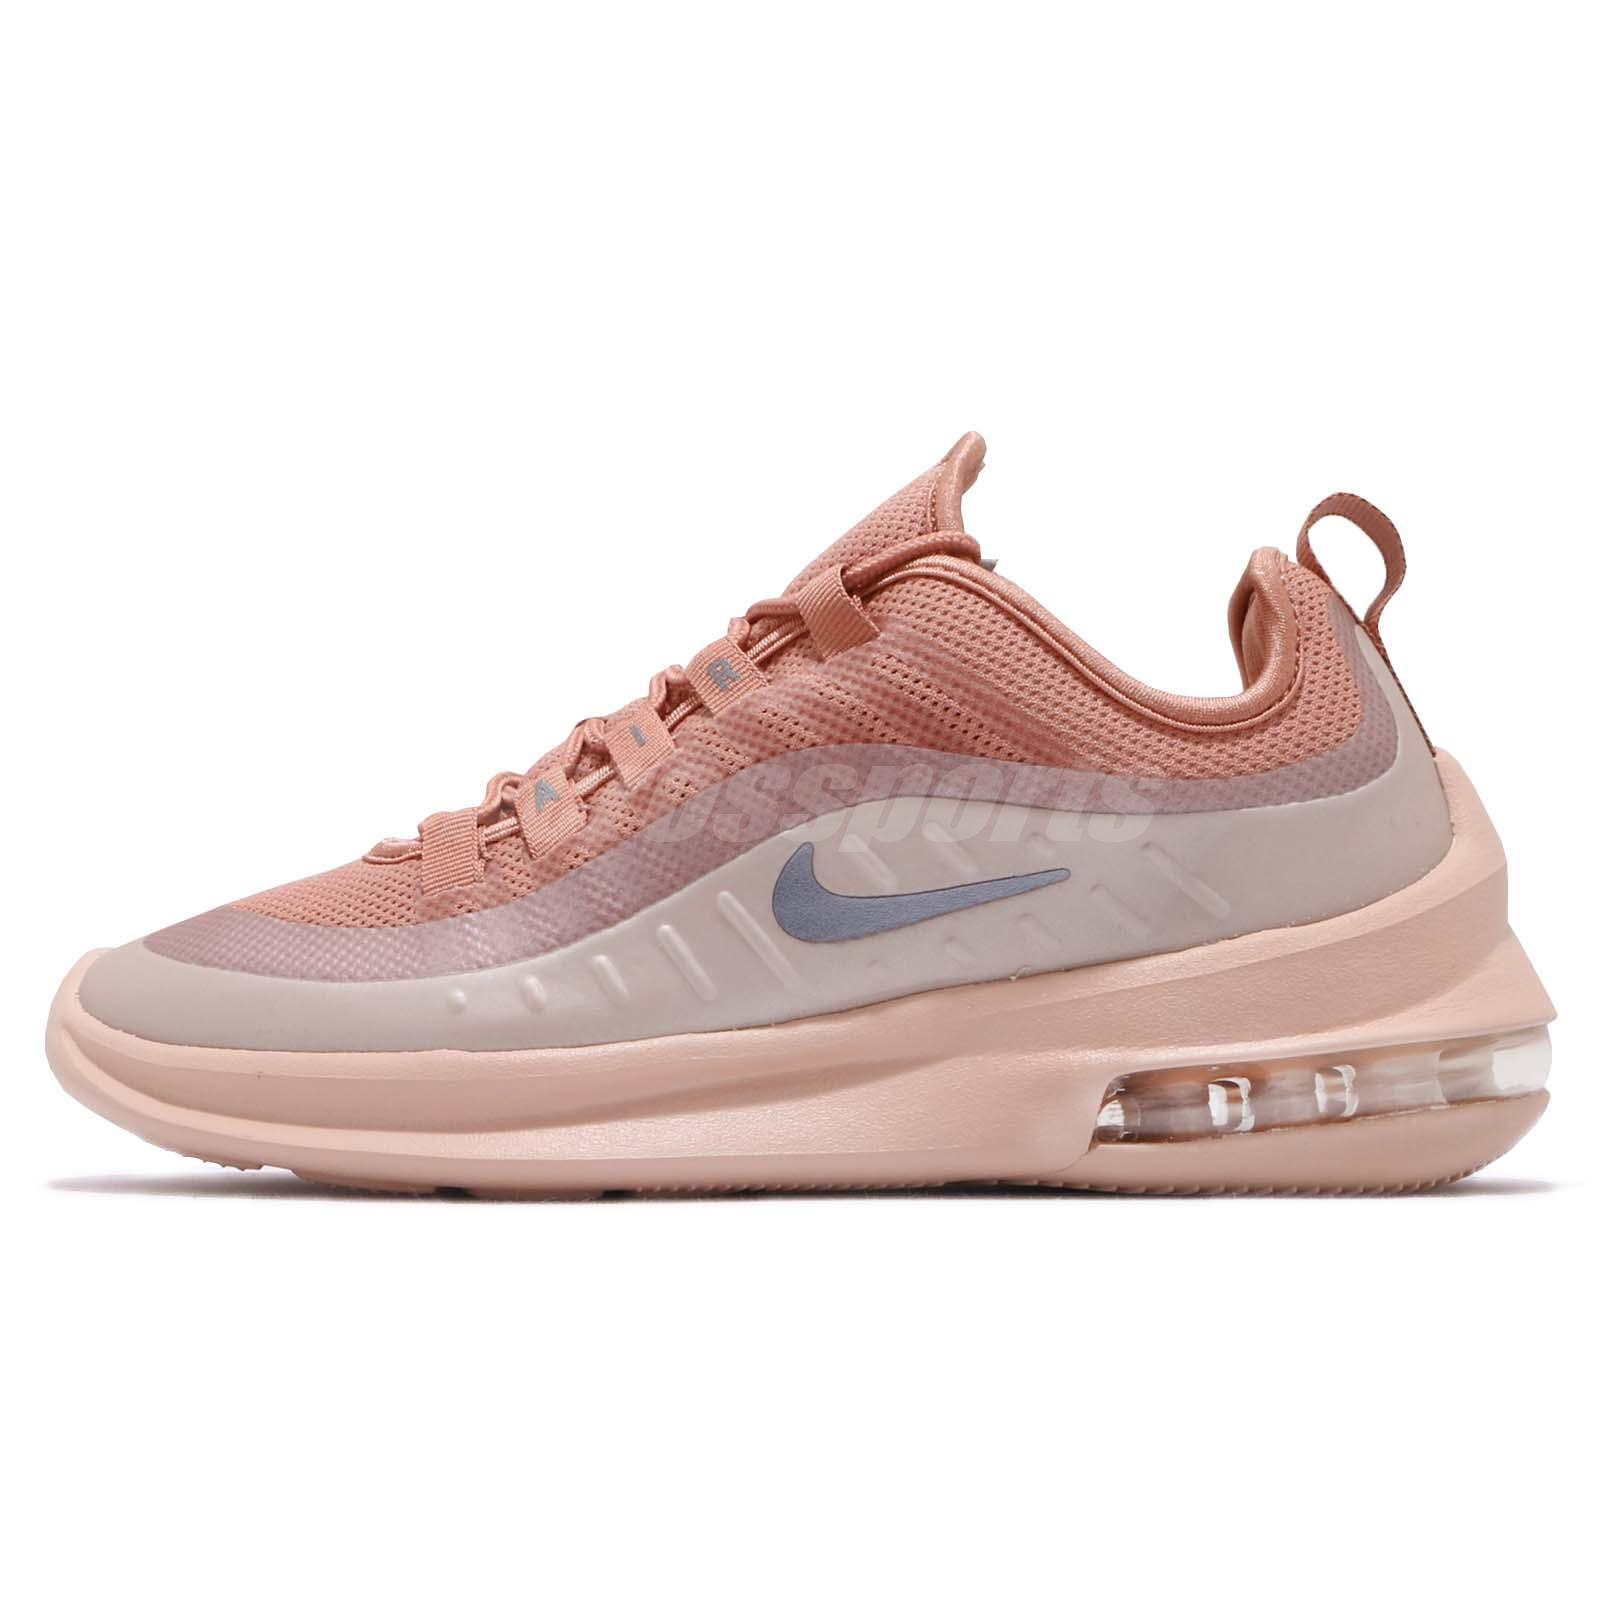 cheaper 83501 ff69b Nike Wmns Air Max Axis Terra Blush Grey Women Running Shoes Sneakers AA2168 -201